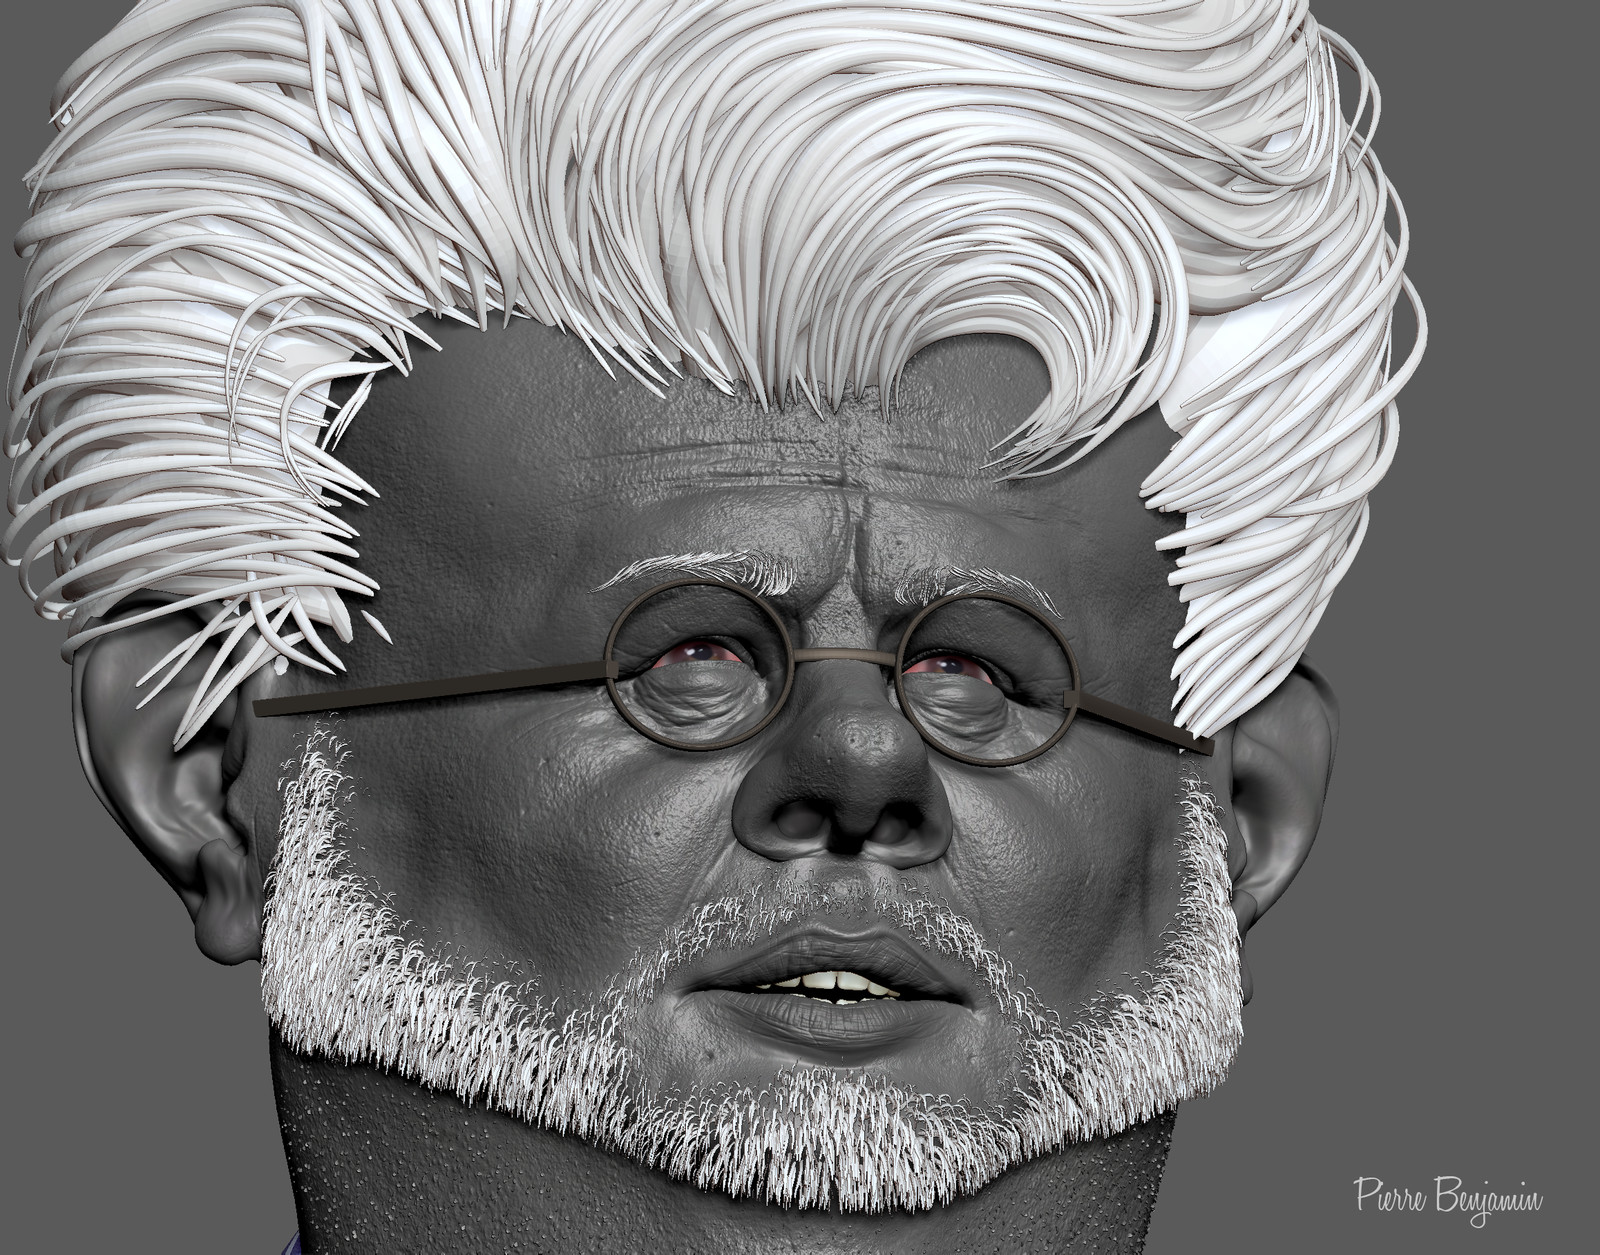 Georges lucas 3D sculpt based upon a 2d caricature by Jason seiler